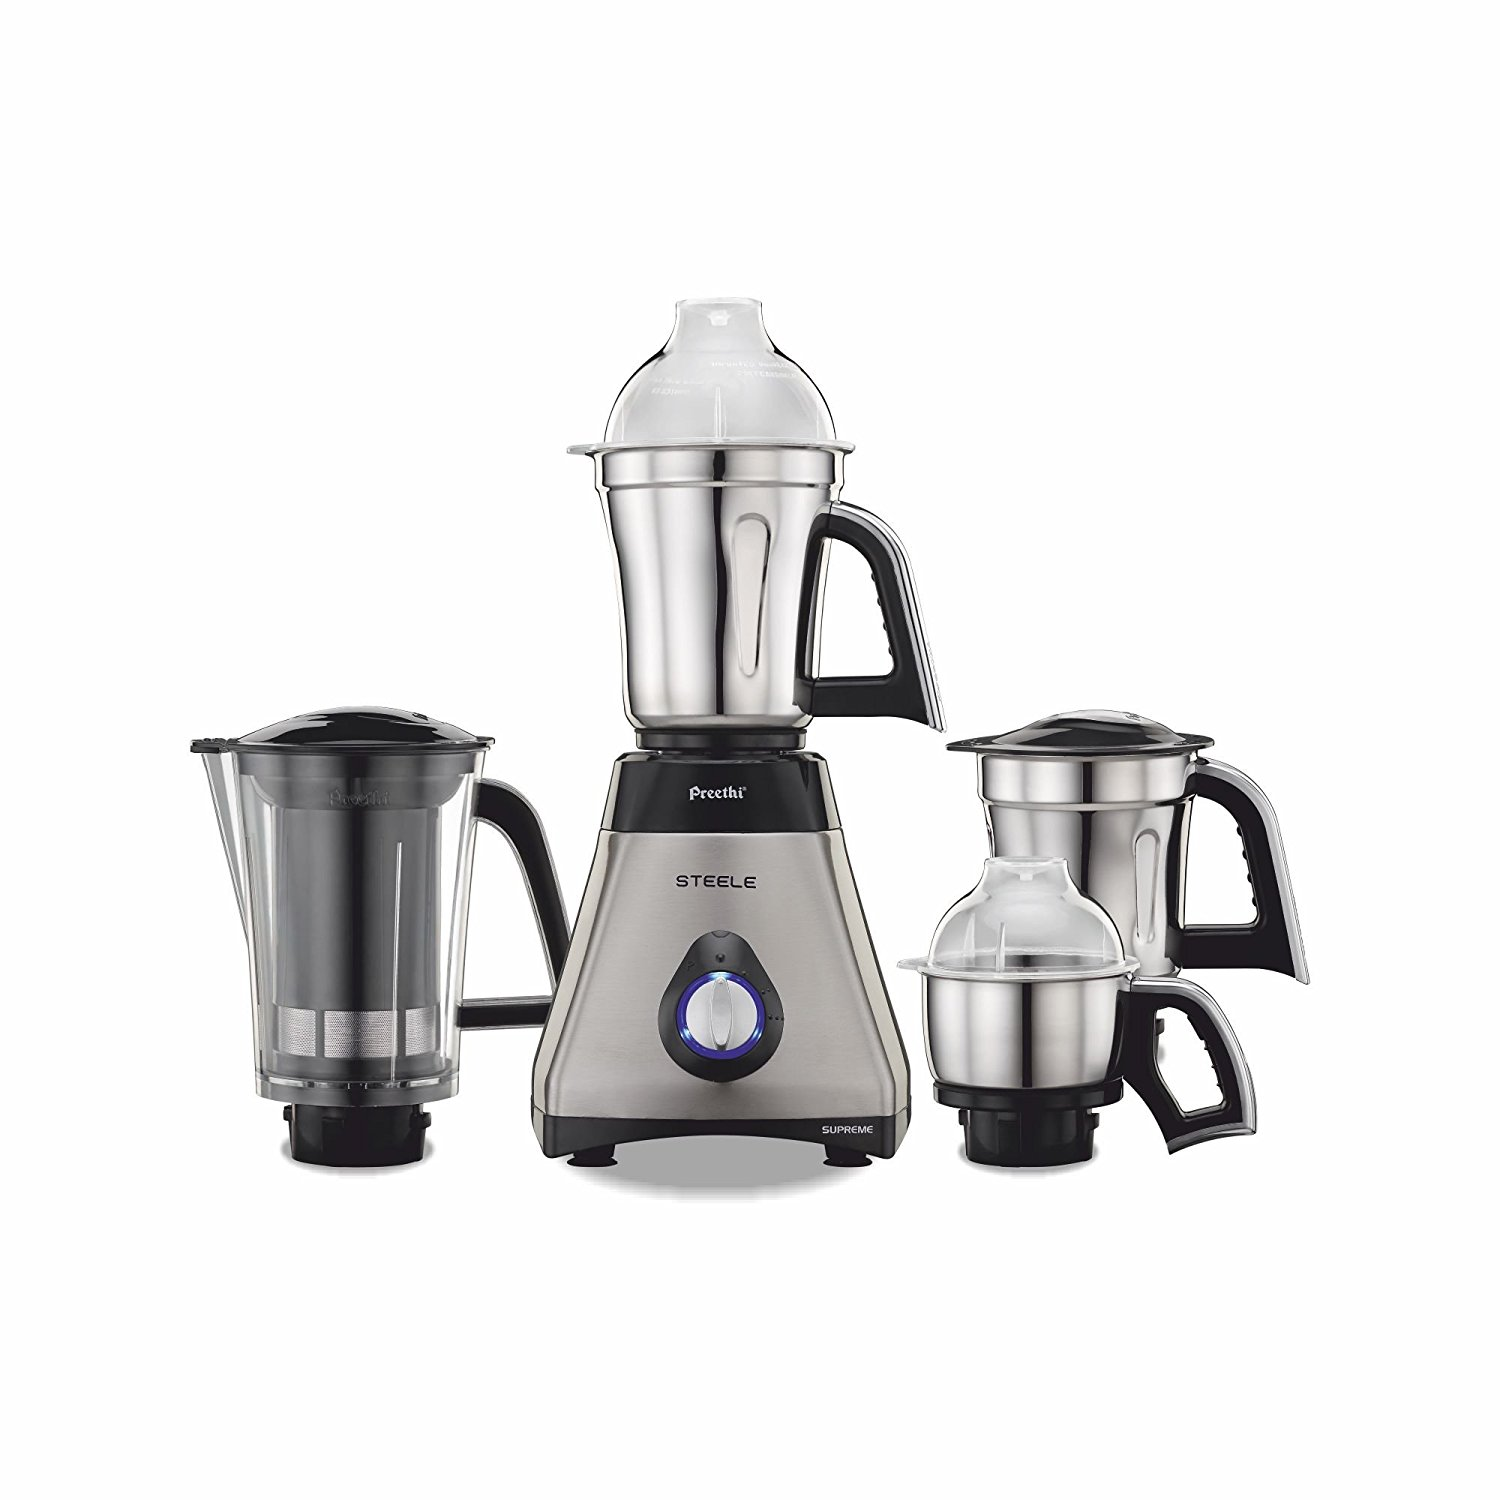 Mixer Grinder Blades : Best mixer grinder in india technosamrat